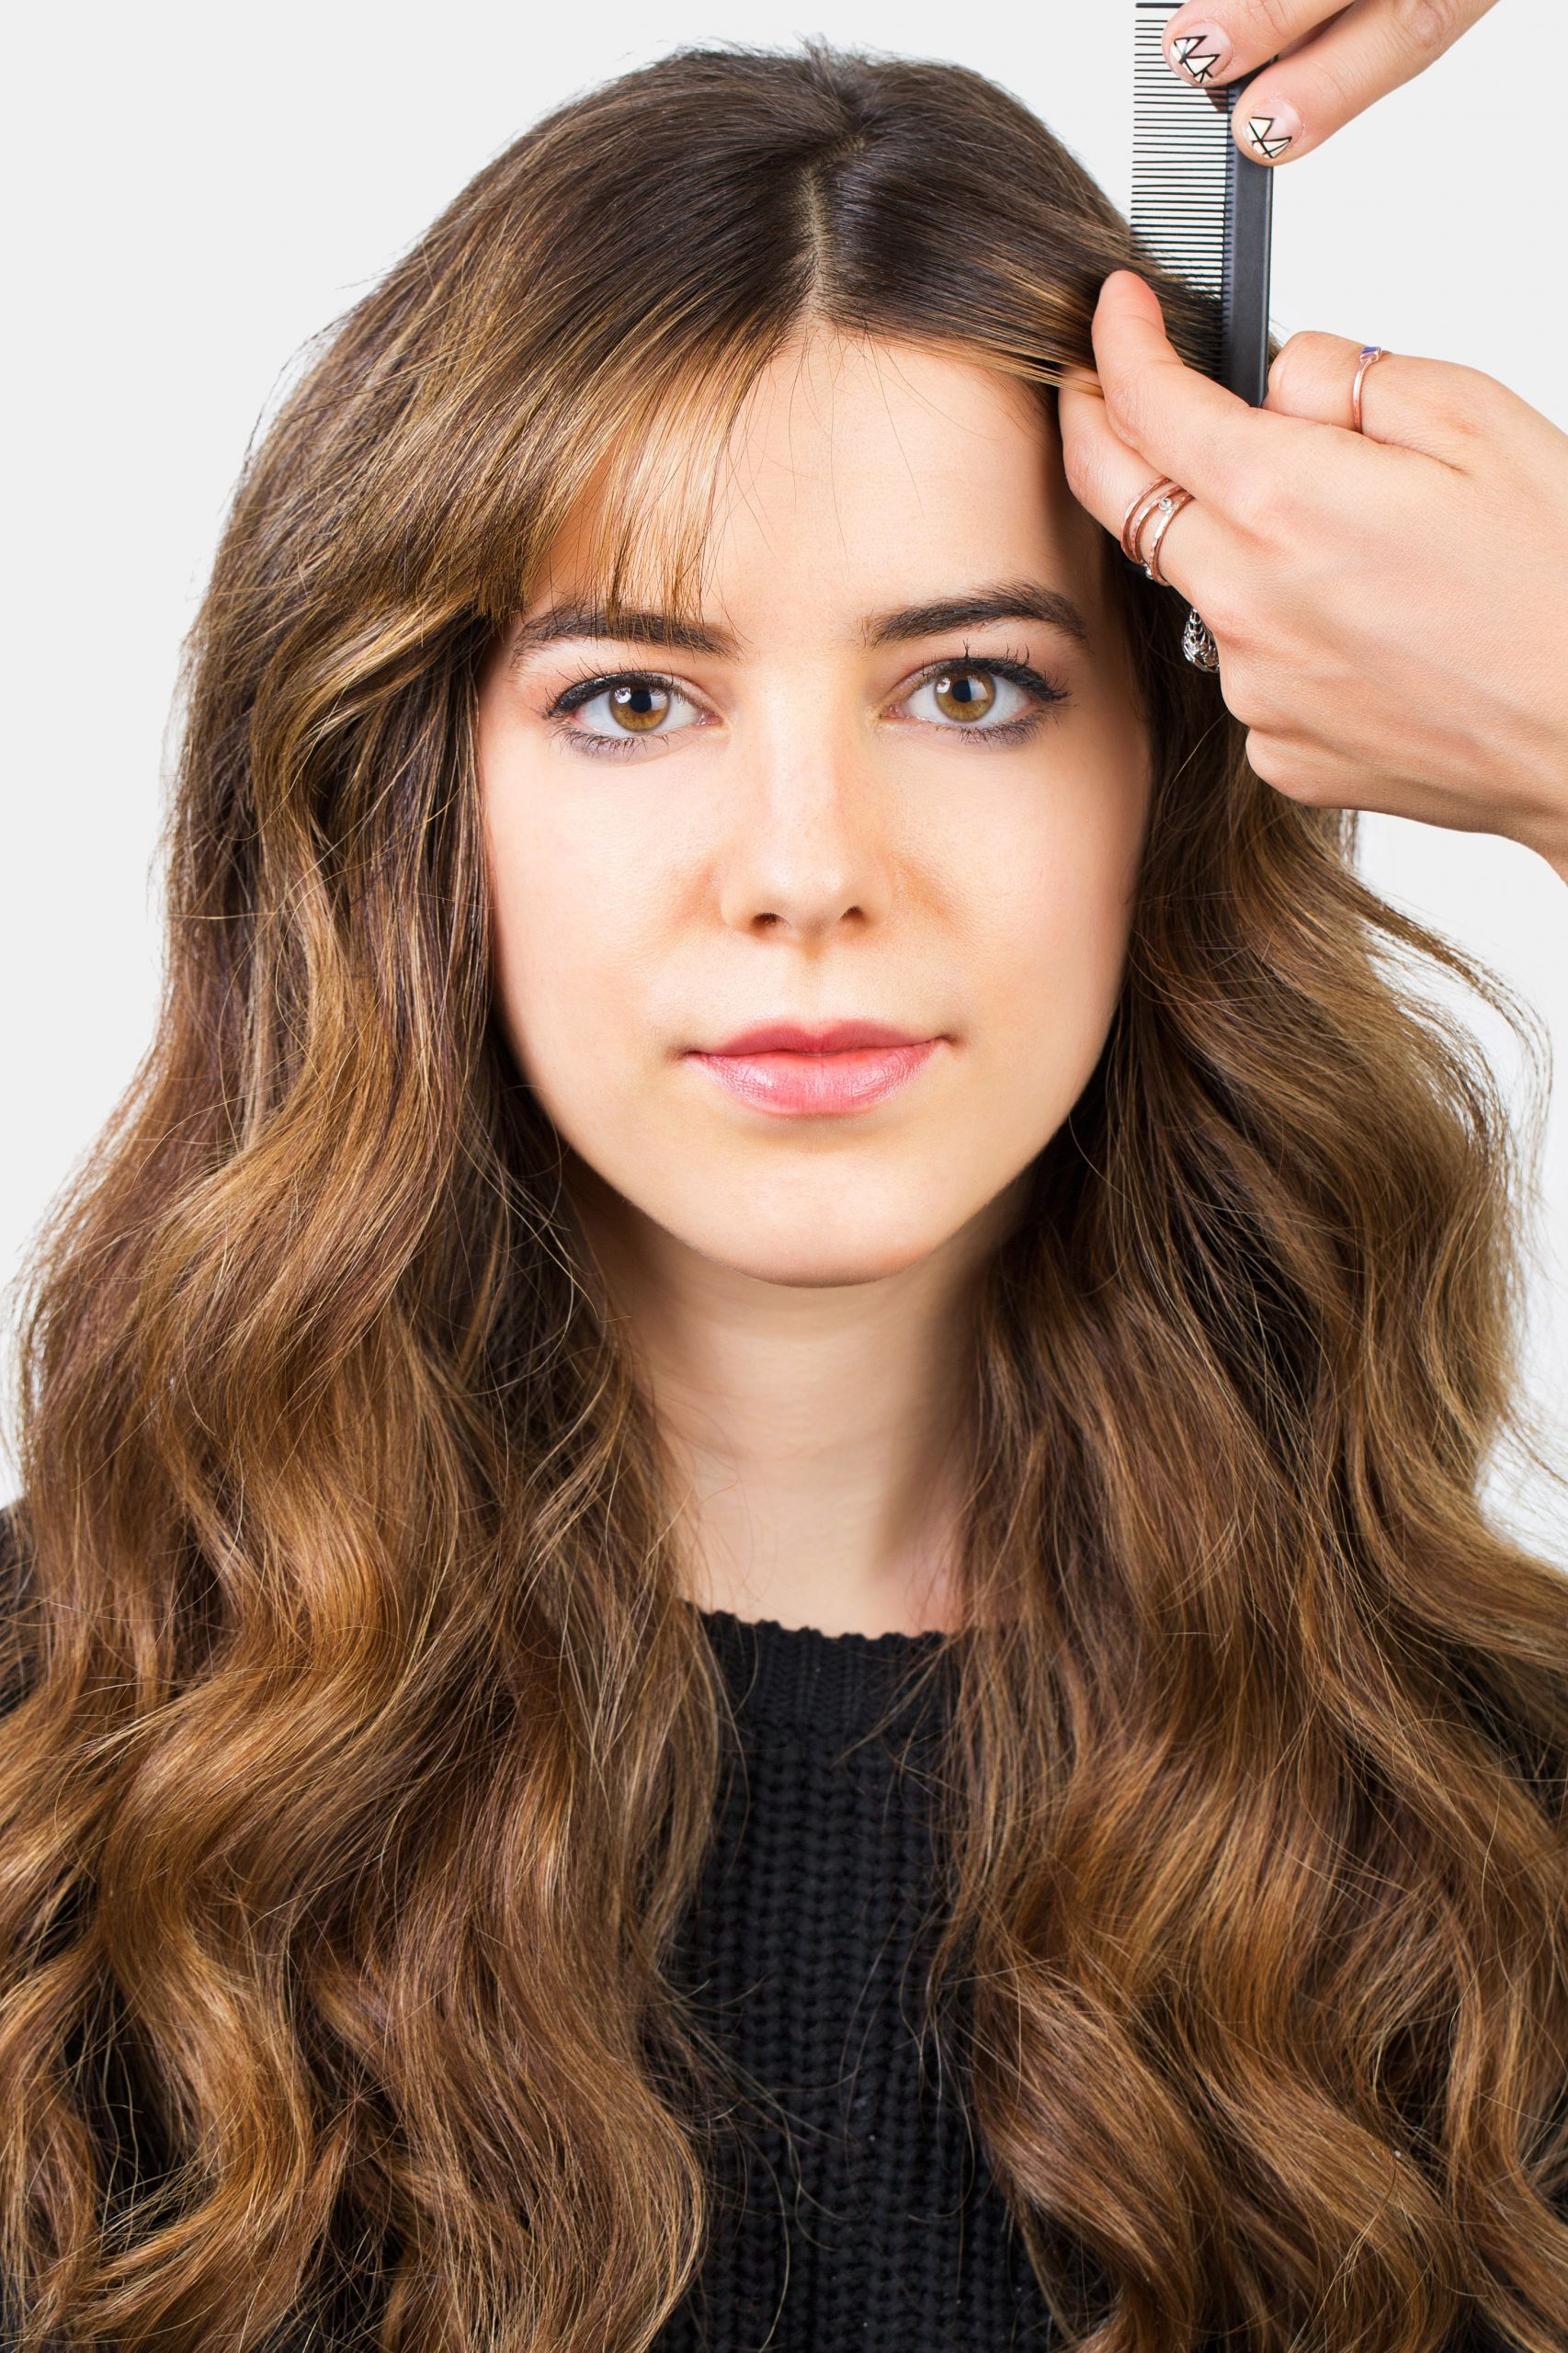 How To Cut Bangs On Long Hair  How to Style Bangs 5 Hairstyles to Keep Your Bangs Out